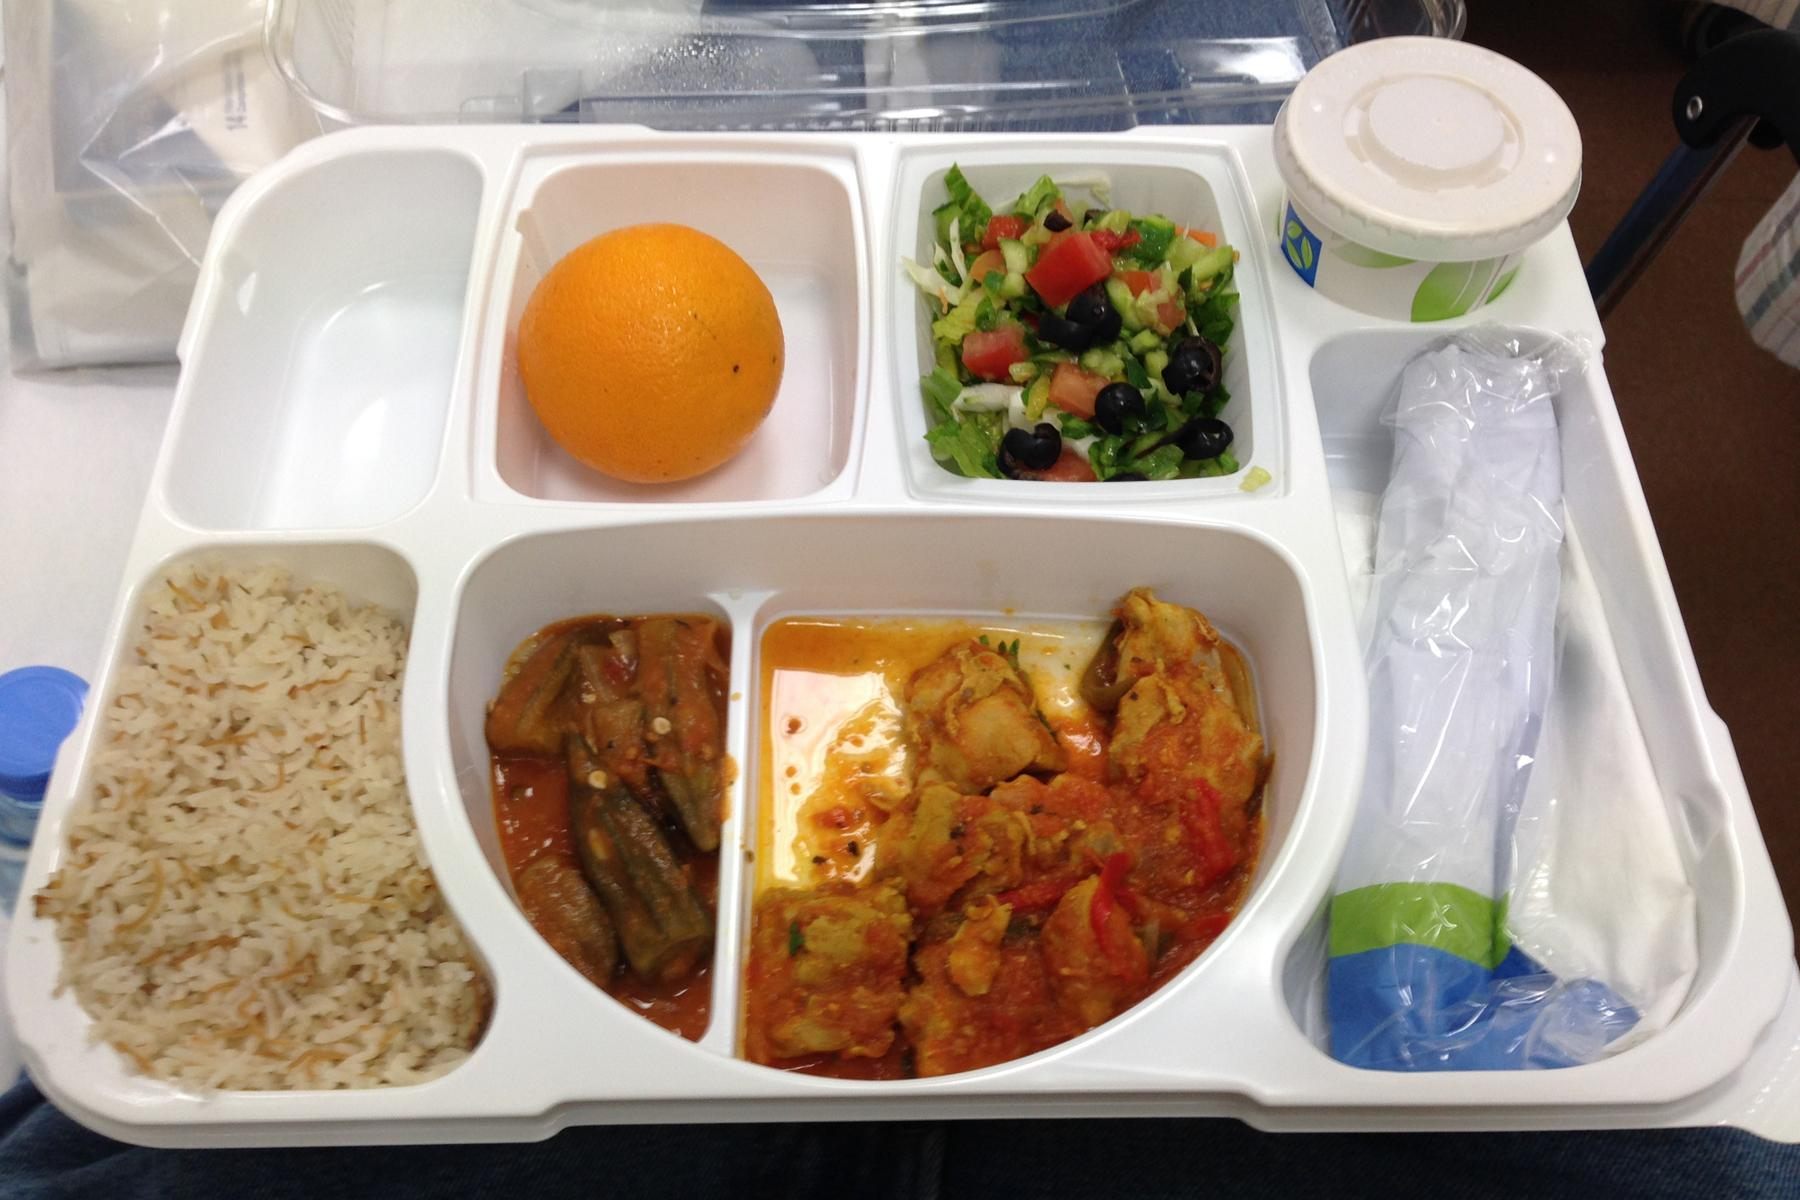 Around the world in 8 hospital meals kuow news and for Cuisine examples